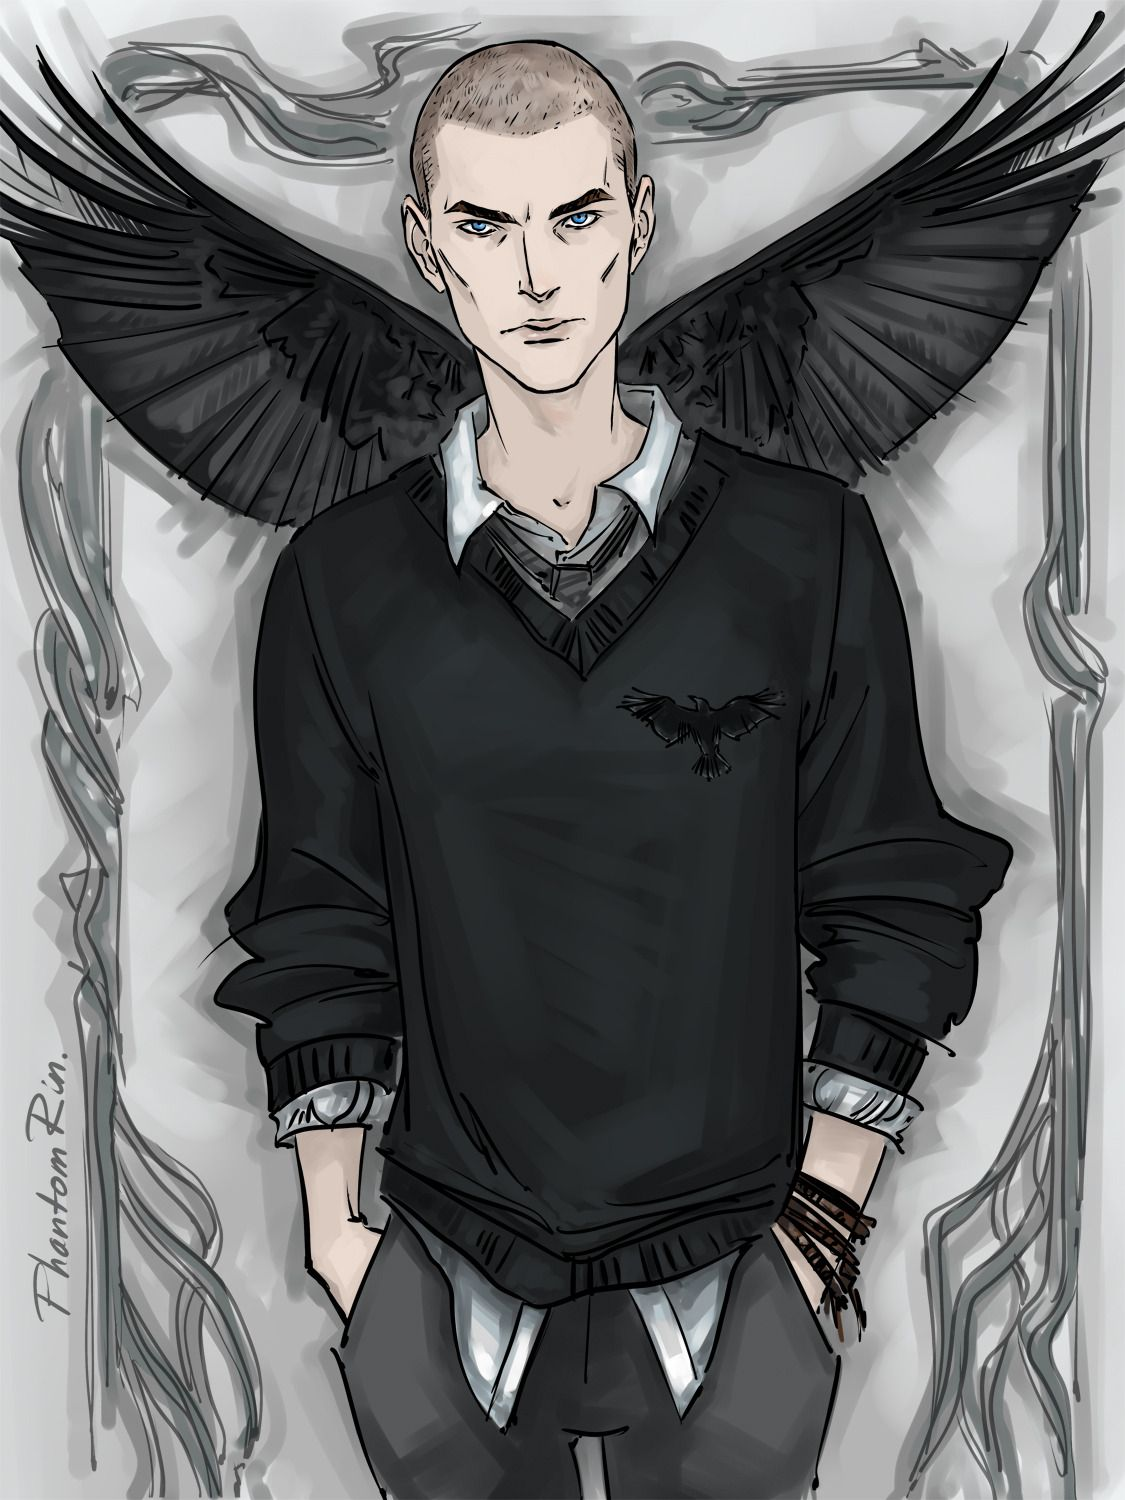 Ronan with raven wings by Phantom Rin (Tumblr)